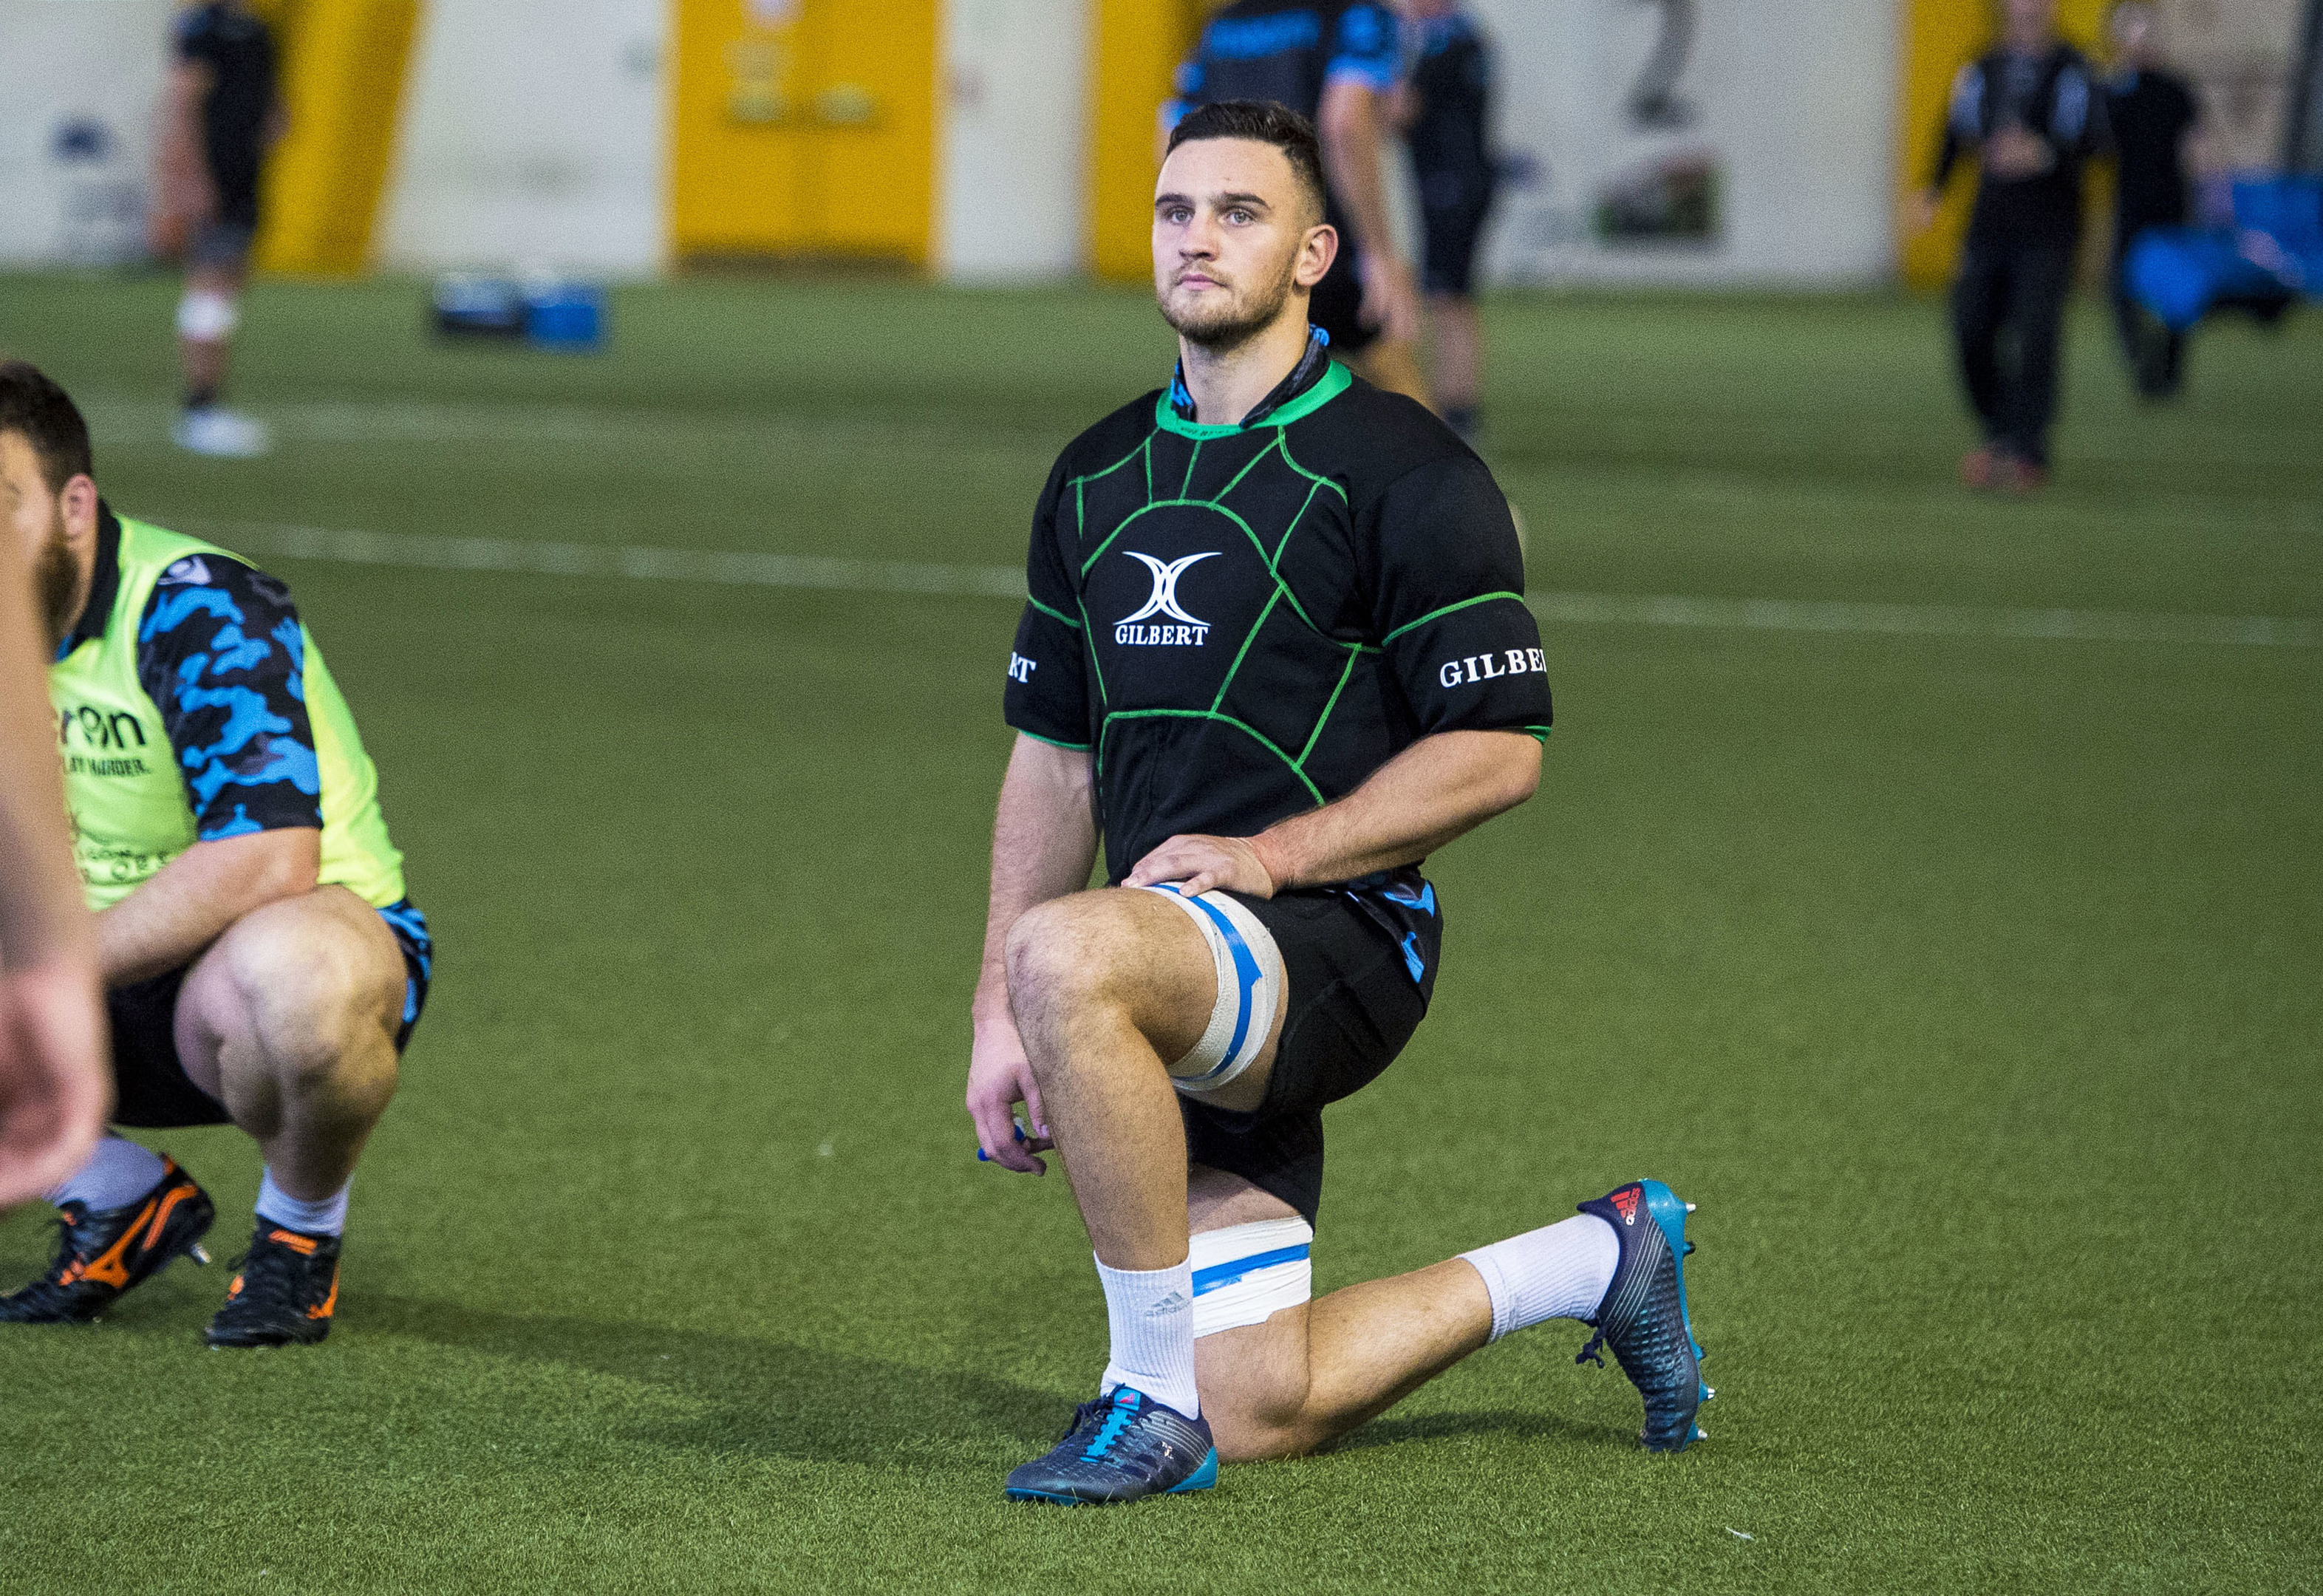 Adam Asheshould be retained in Glasgow's squad for Lyon this week.